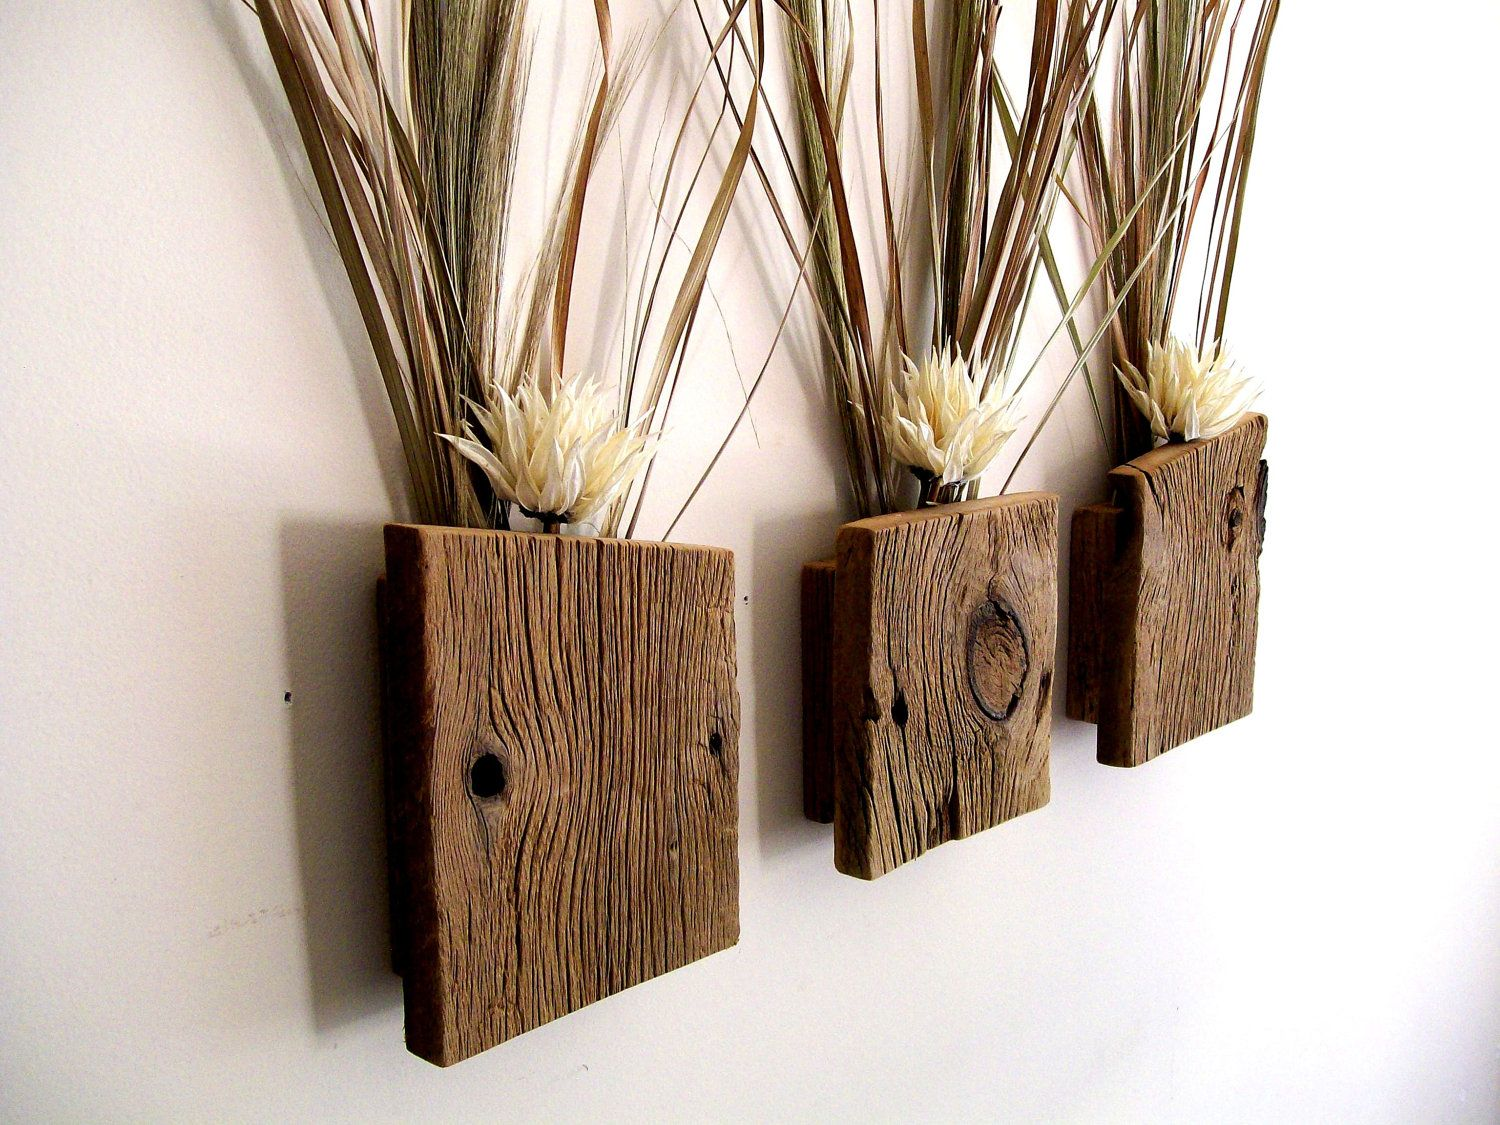 Set of 3 rustic reclaimed barn wood wall vase flower sconce set of 3 rustic reclaimed barn wood wall vase flower sconce 3900 amipublicfo Images